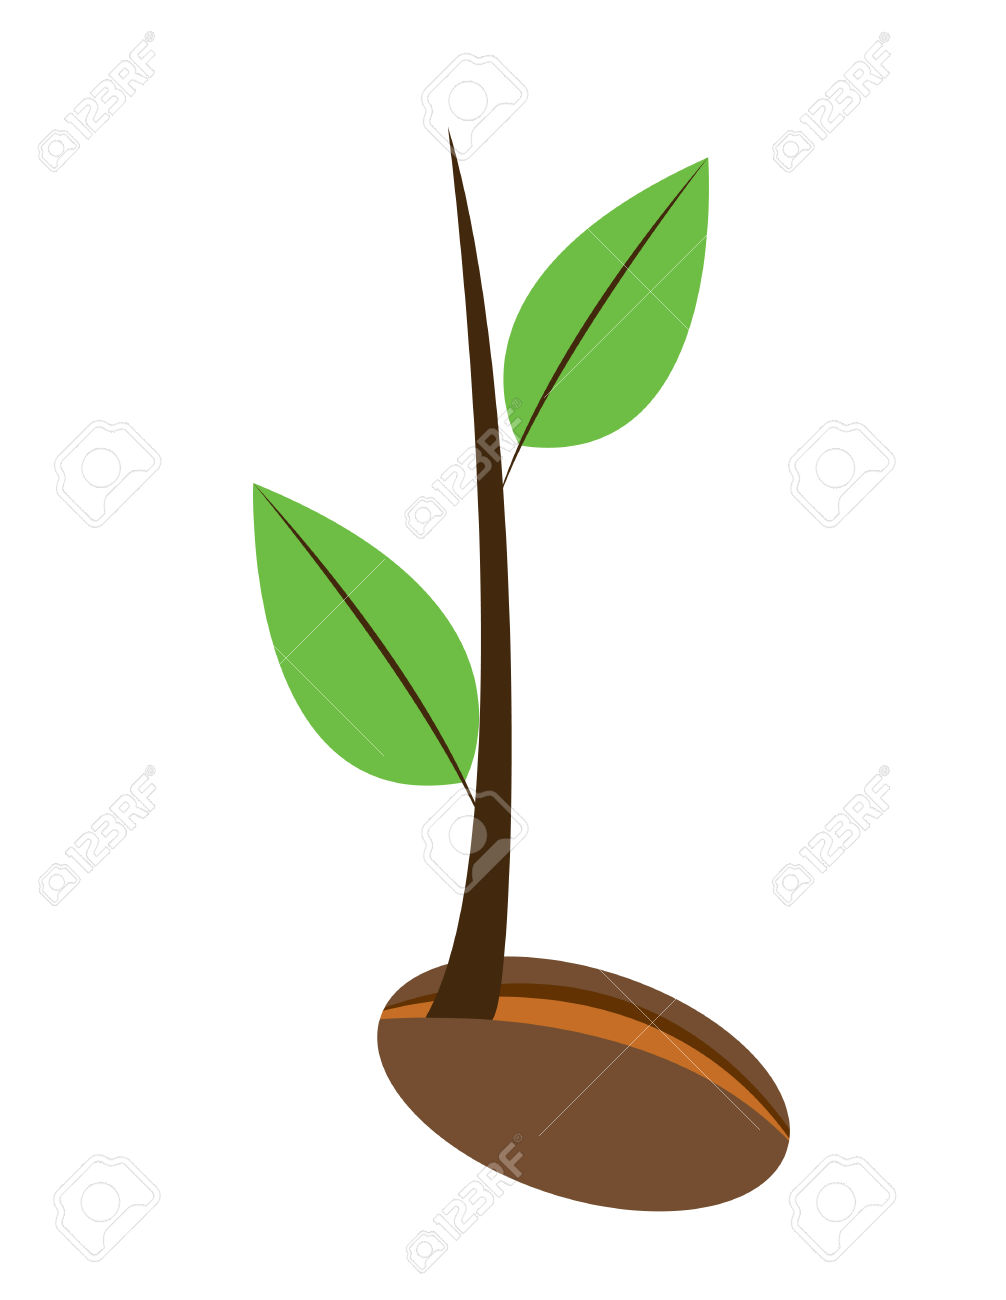 Leaves grow clipart #15